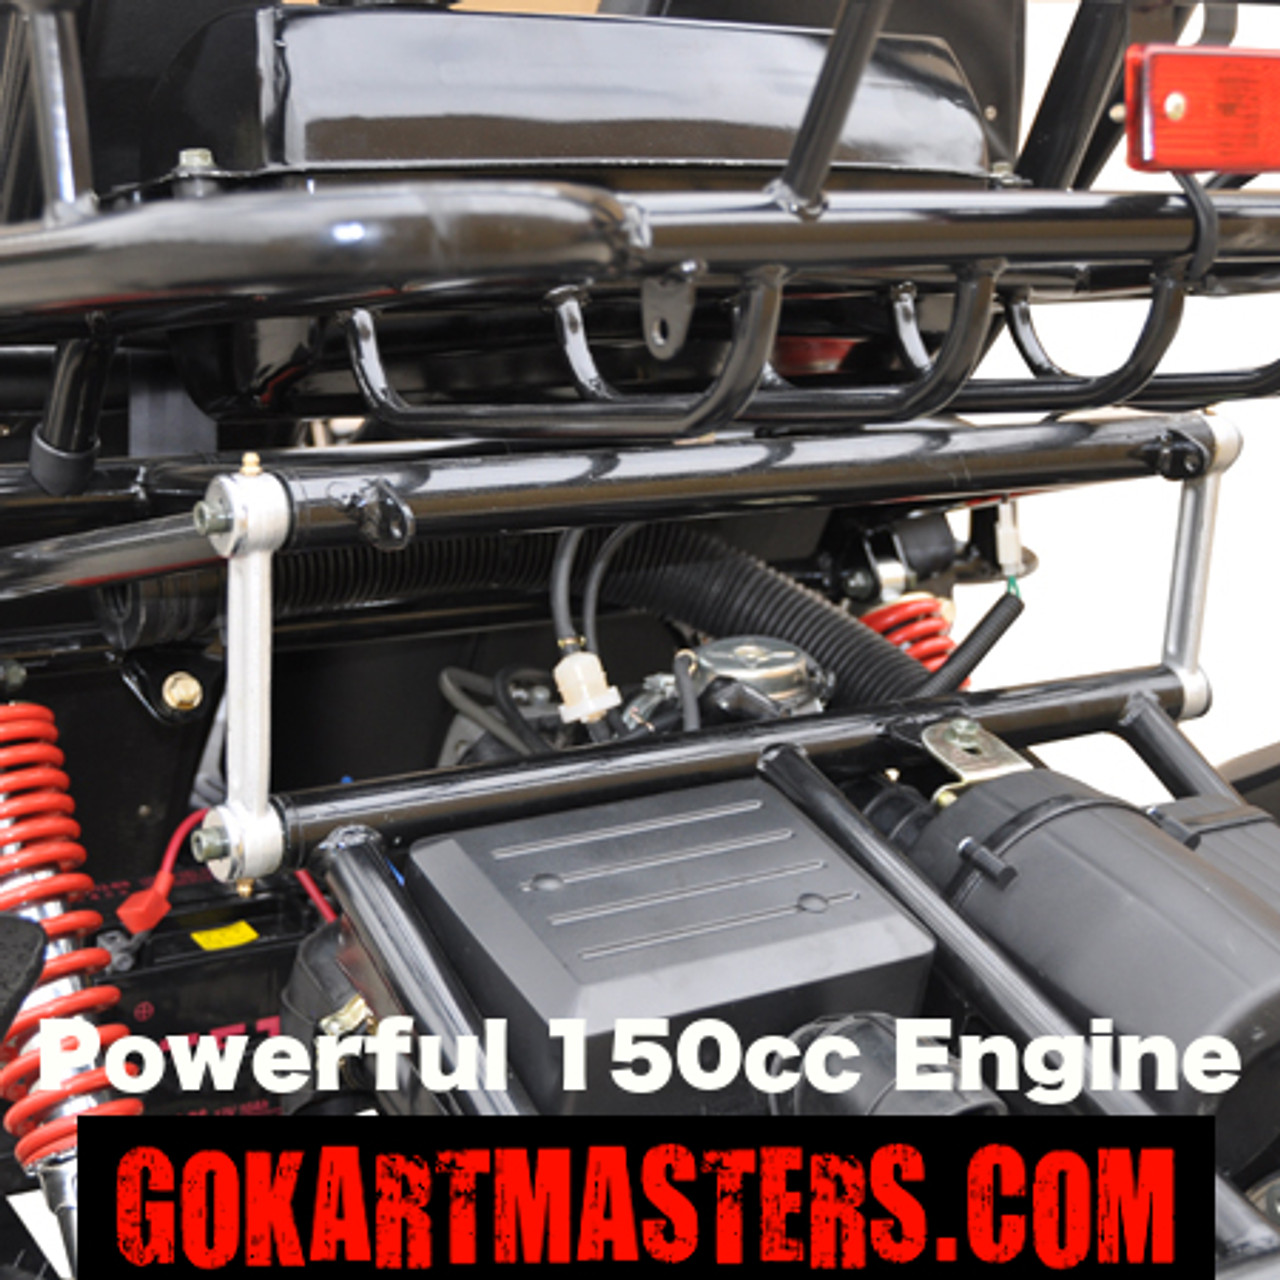 TrailMaster 150 XRS Go-Kart - Powerful 150cc Engine